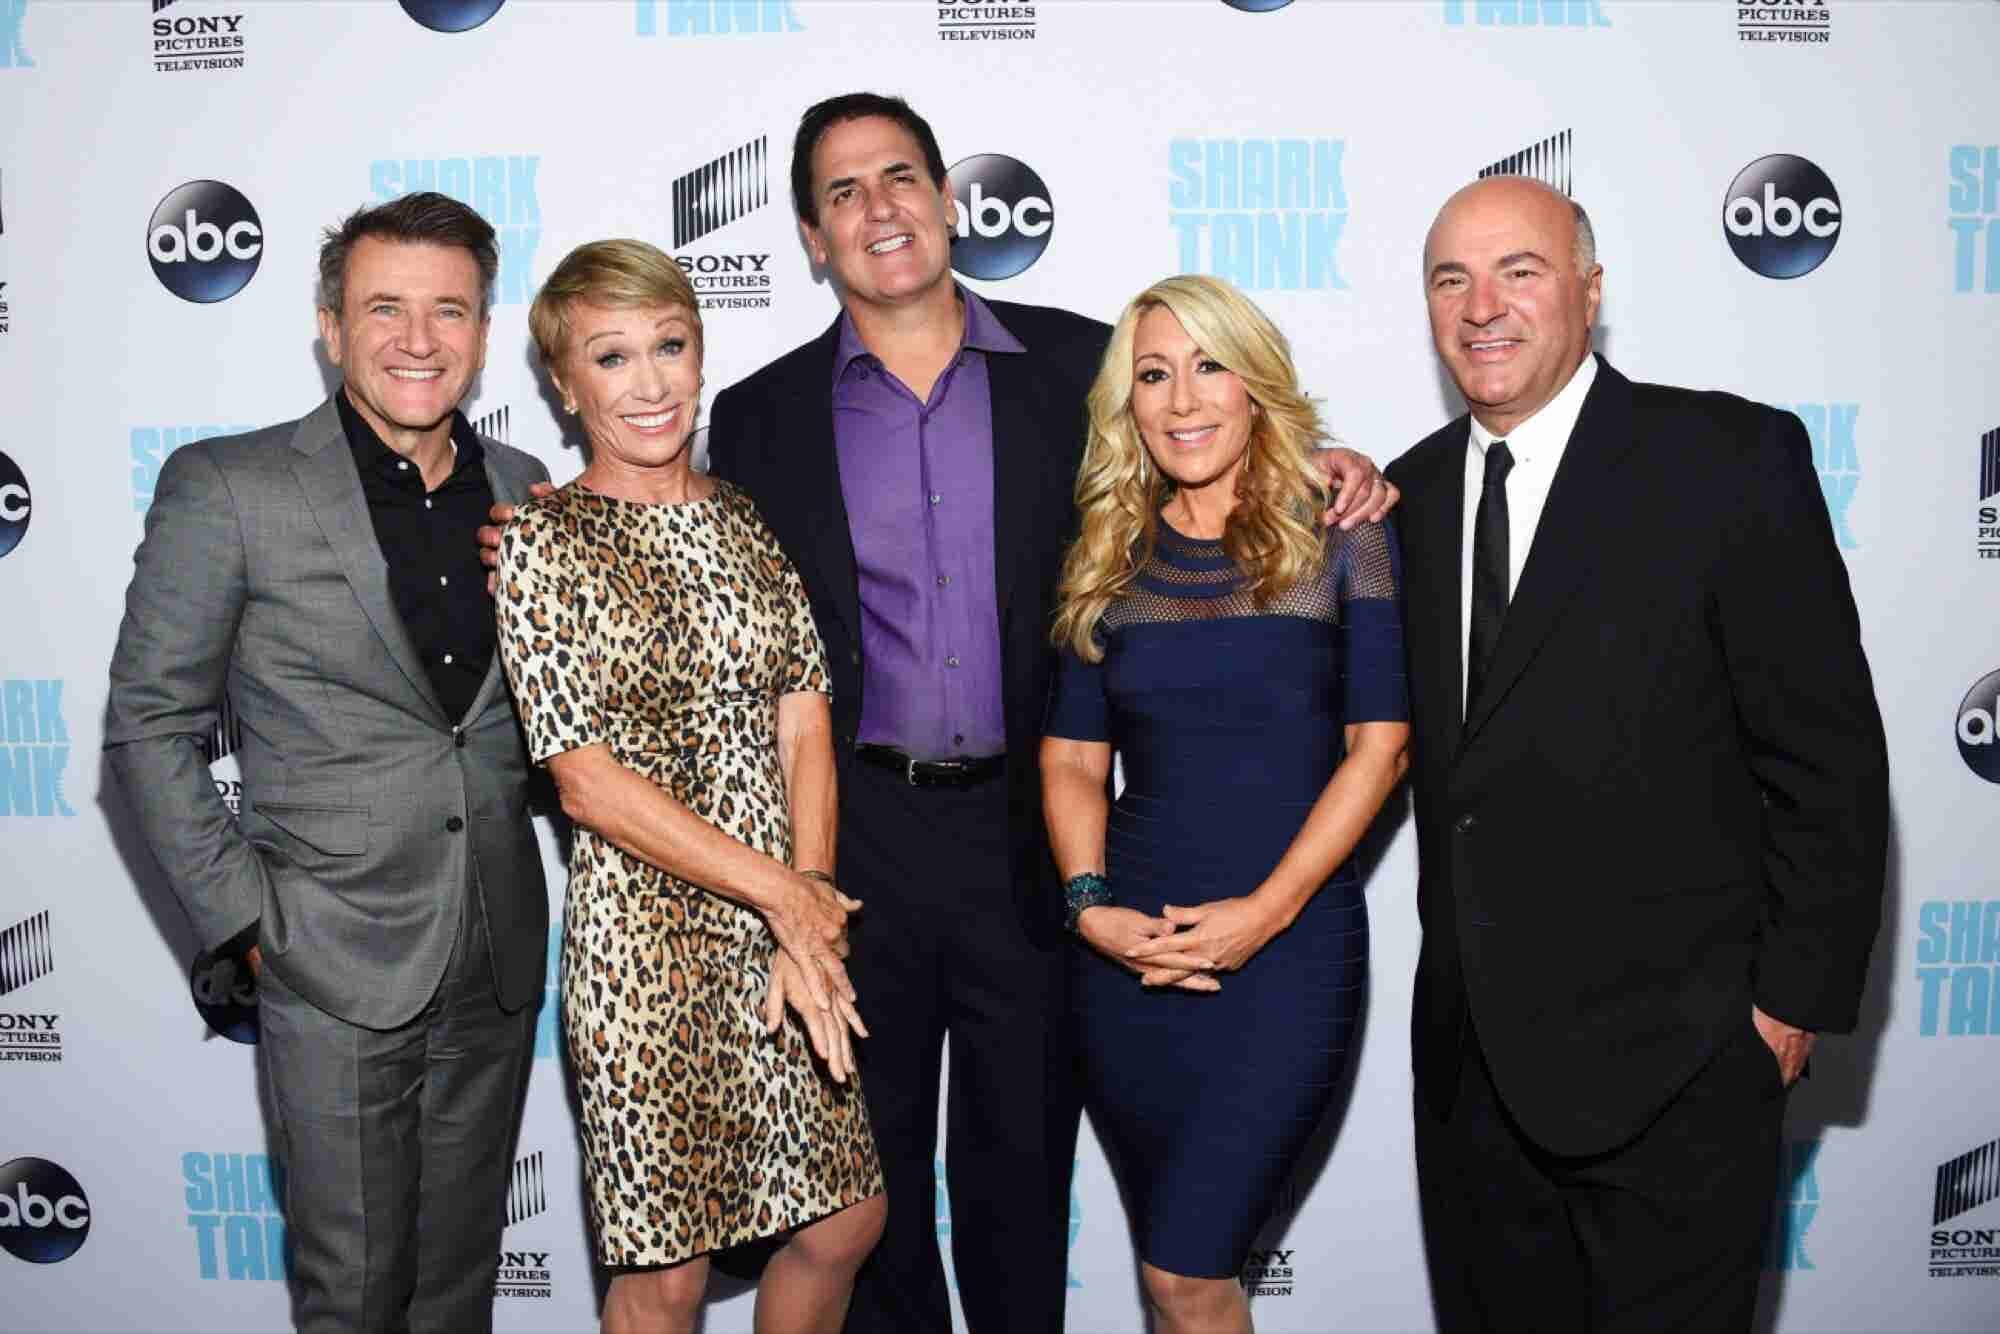 Exclusive: 5 'Shark Tank' Stars Weigh in on the Marijuana Boom